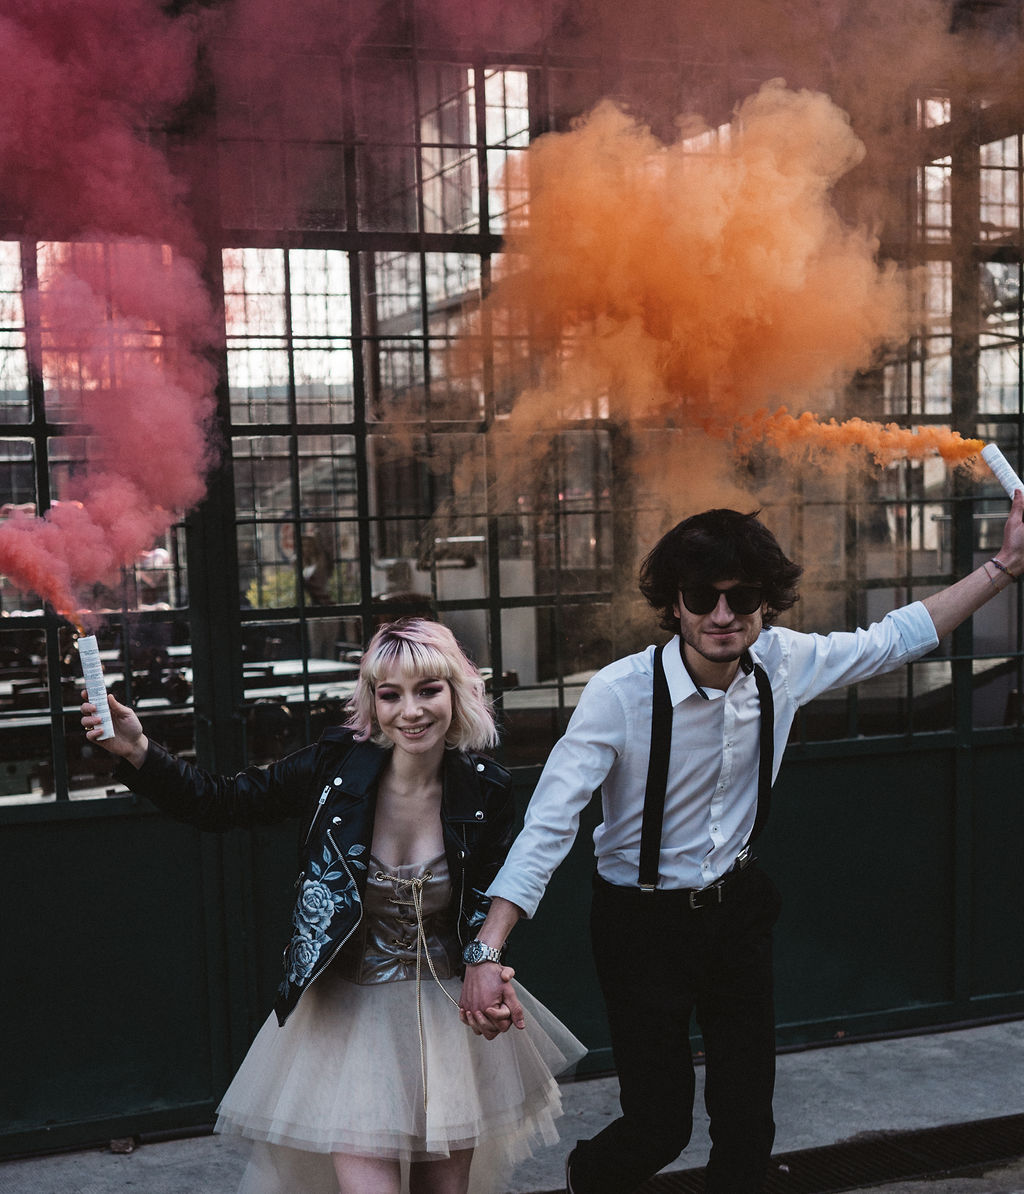 wedding smoke bomb - modern industrial wedding - alternative wedding - unconventional wedding - edgy wedding - rock and roll wedding